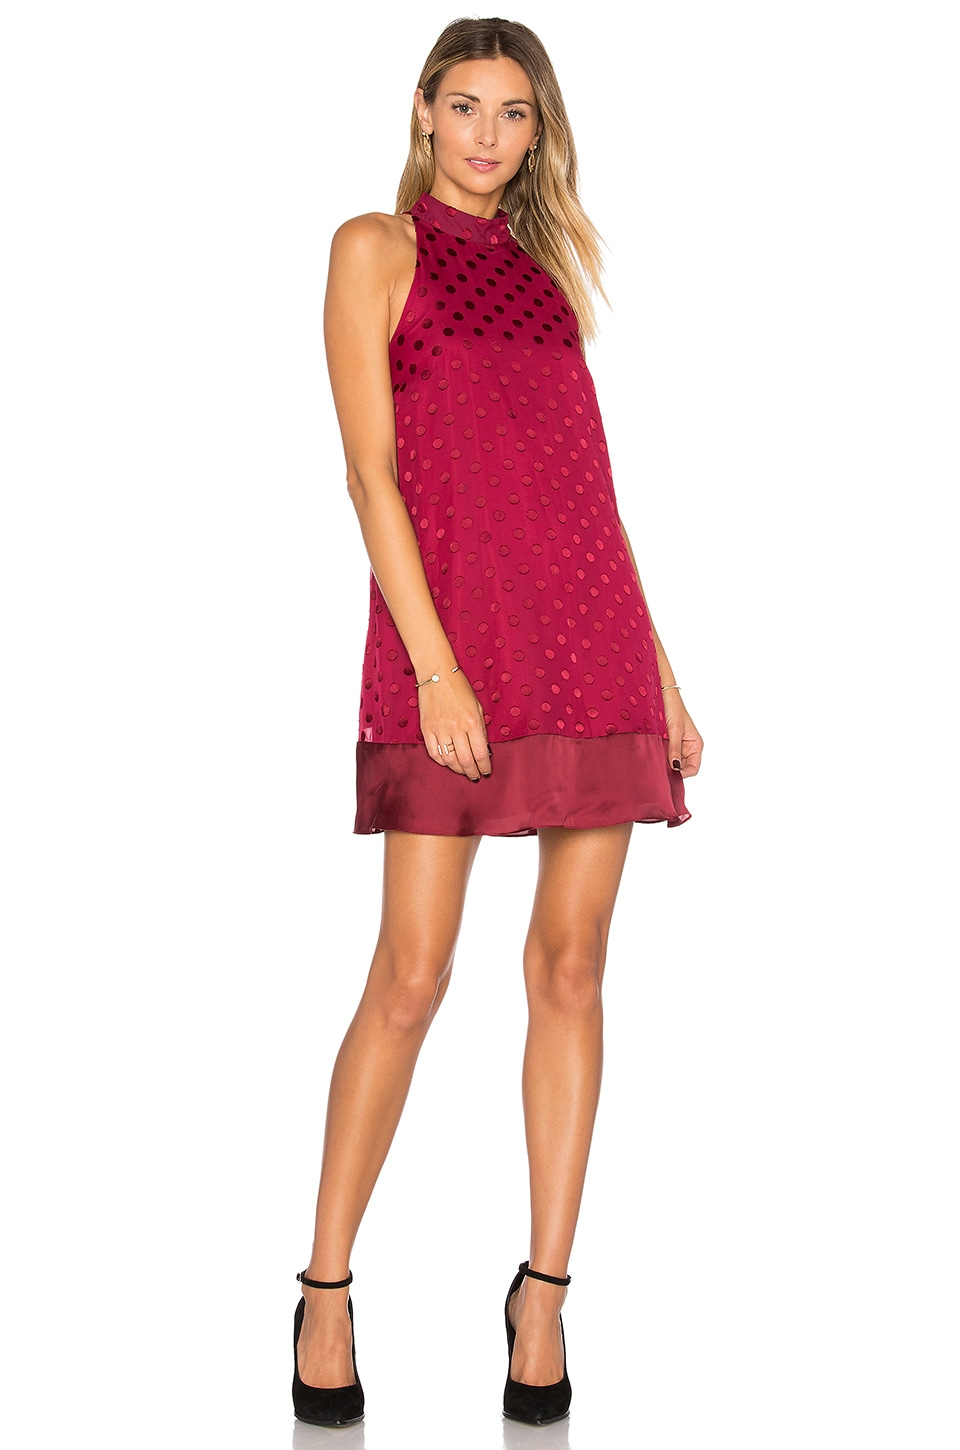 Lovers + Friends Lily Dress in Raspberry